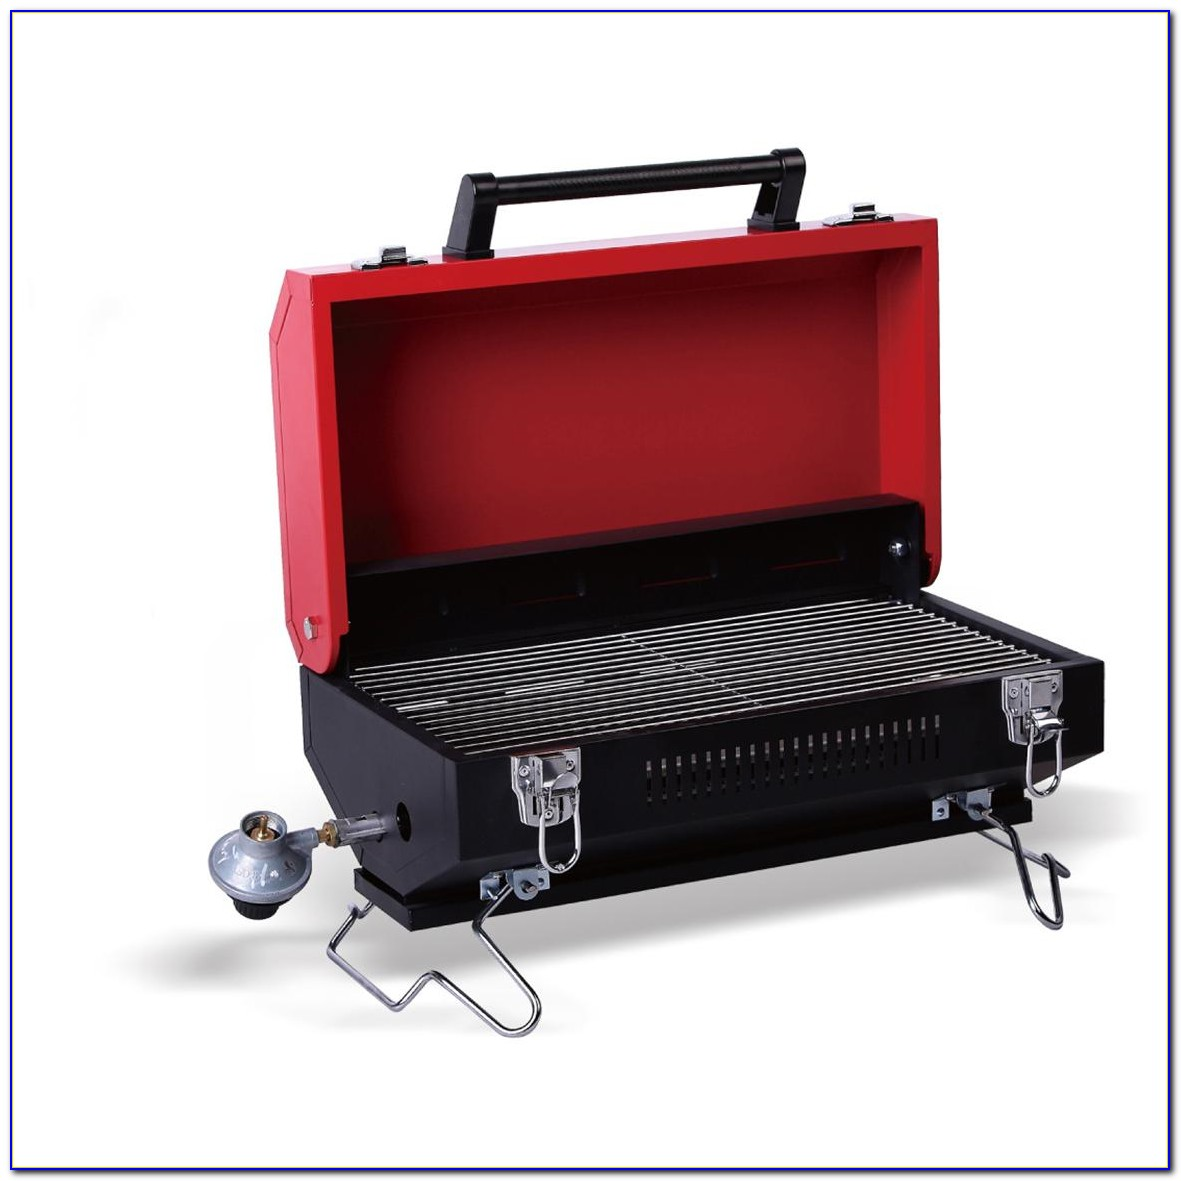 Table Top Barbecue Grills